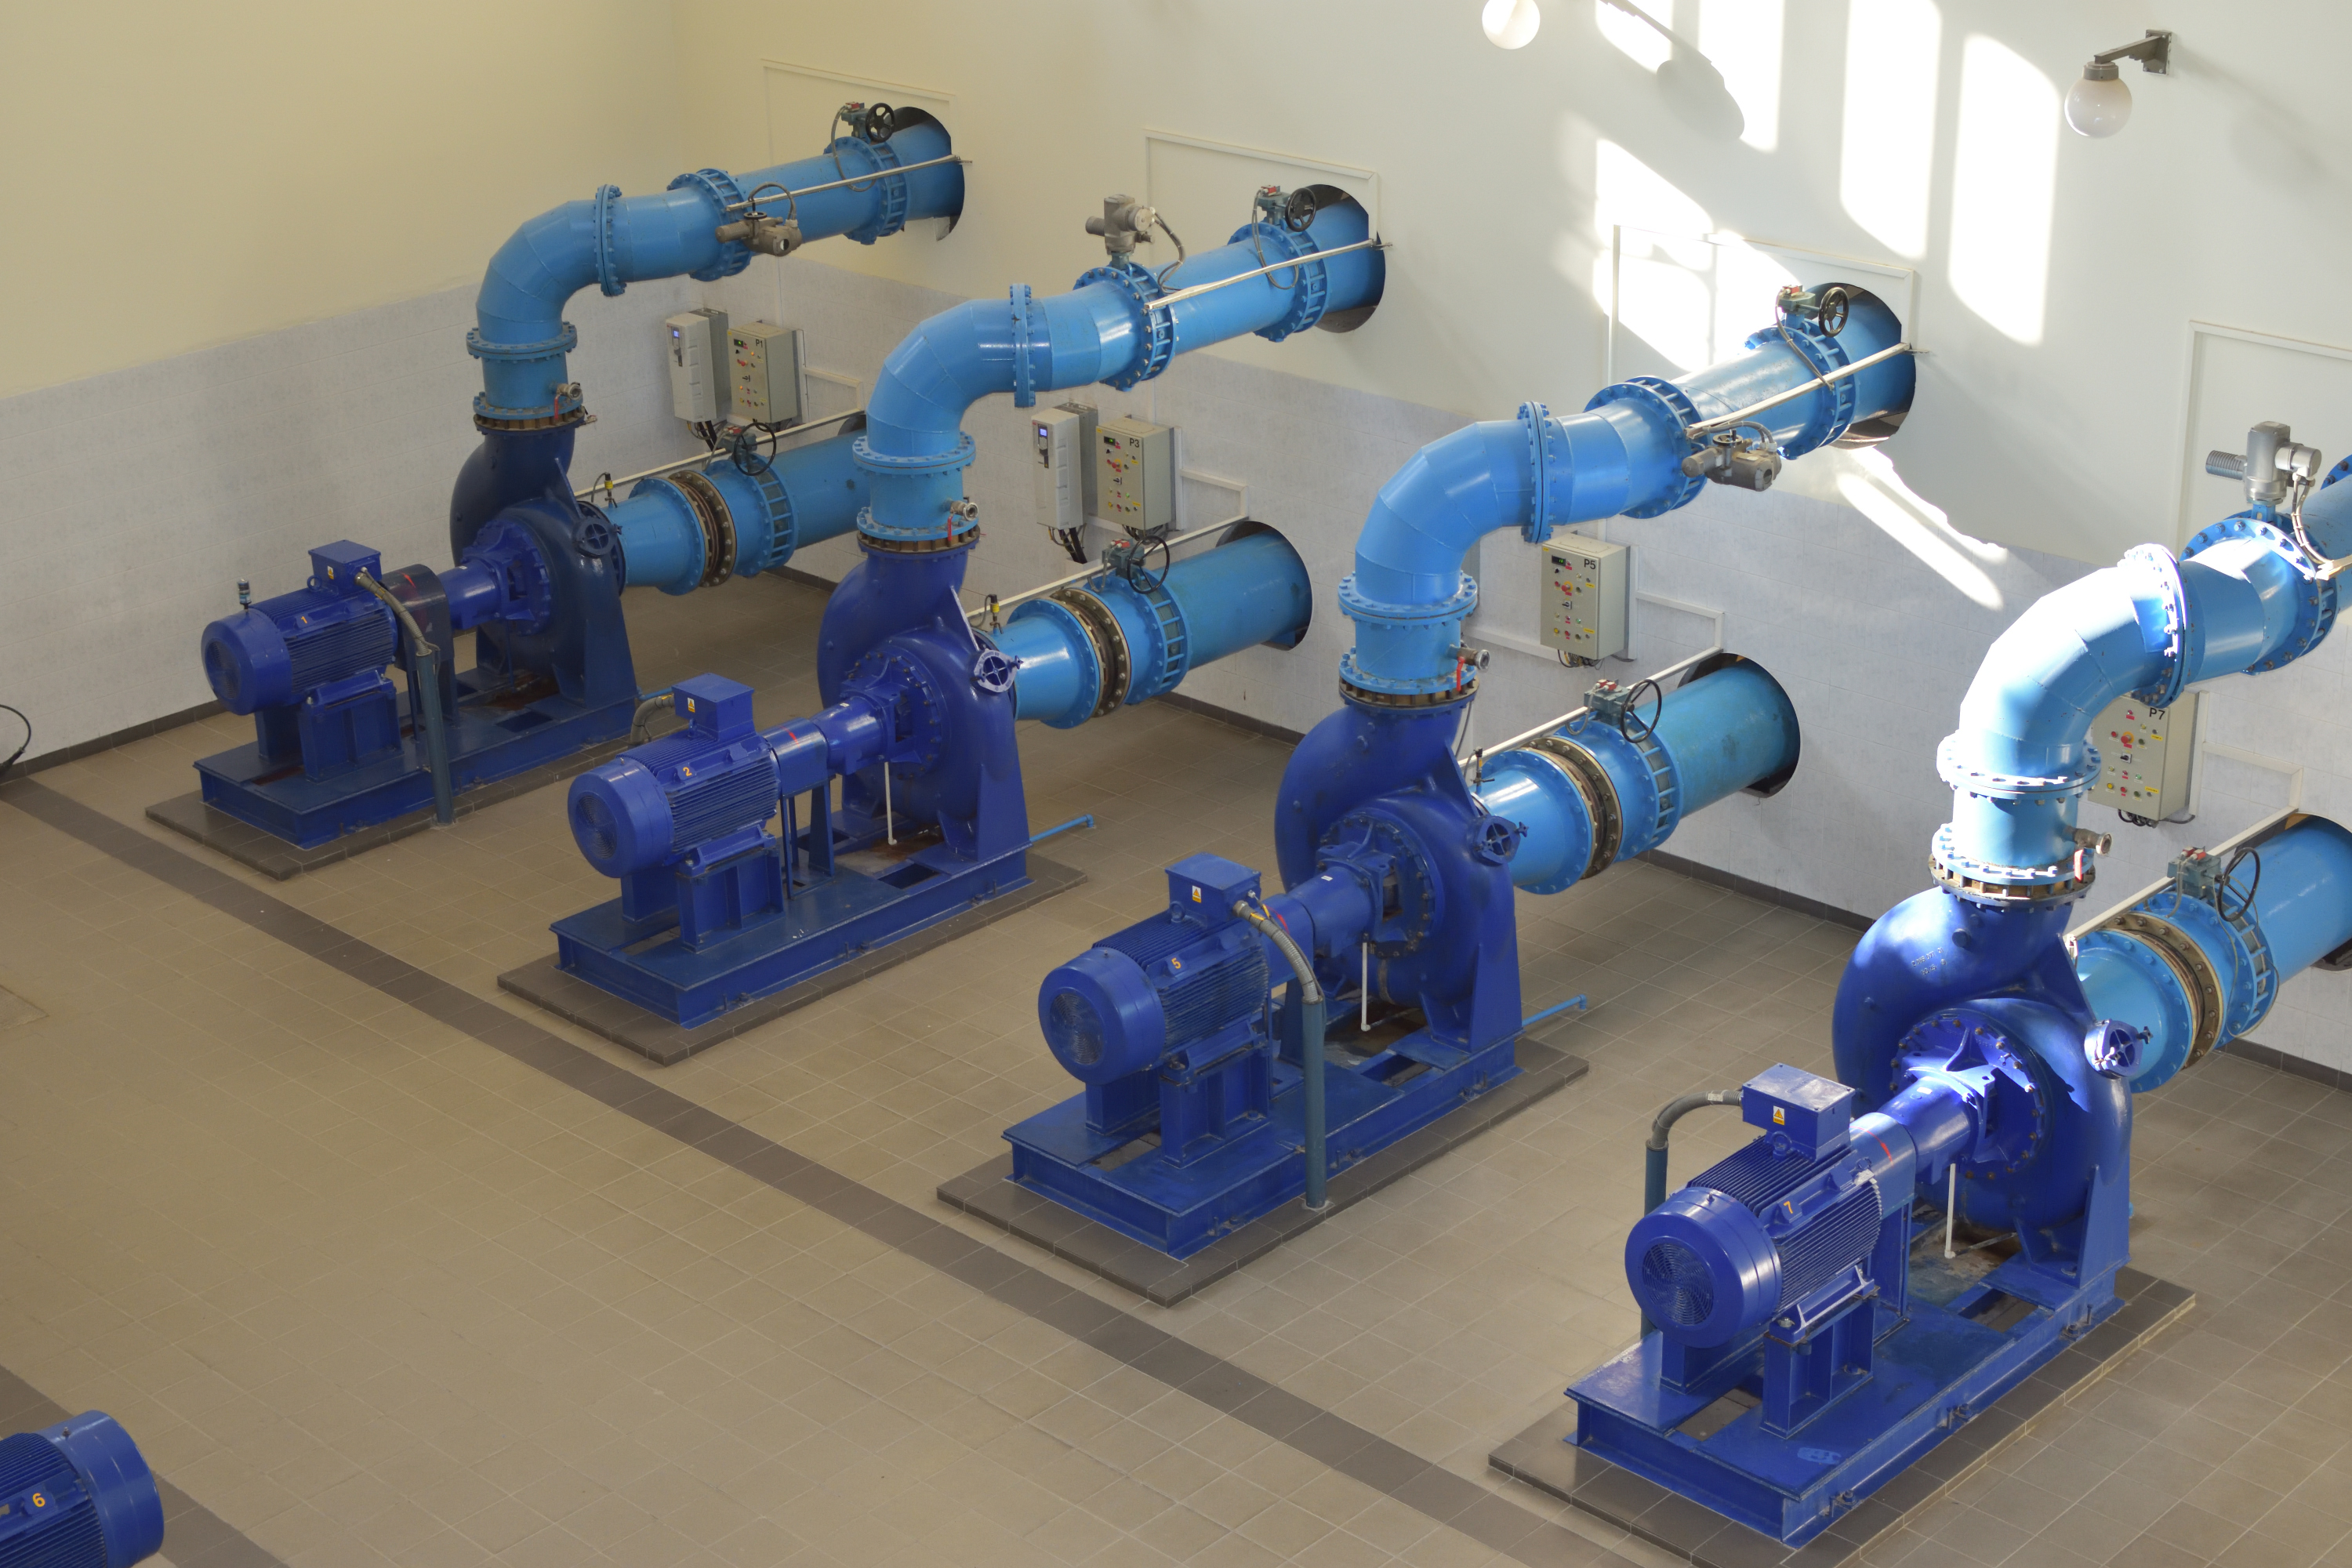 Figure 1: Pumps attached to pipes.